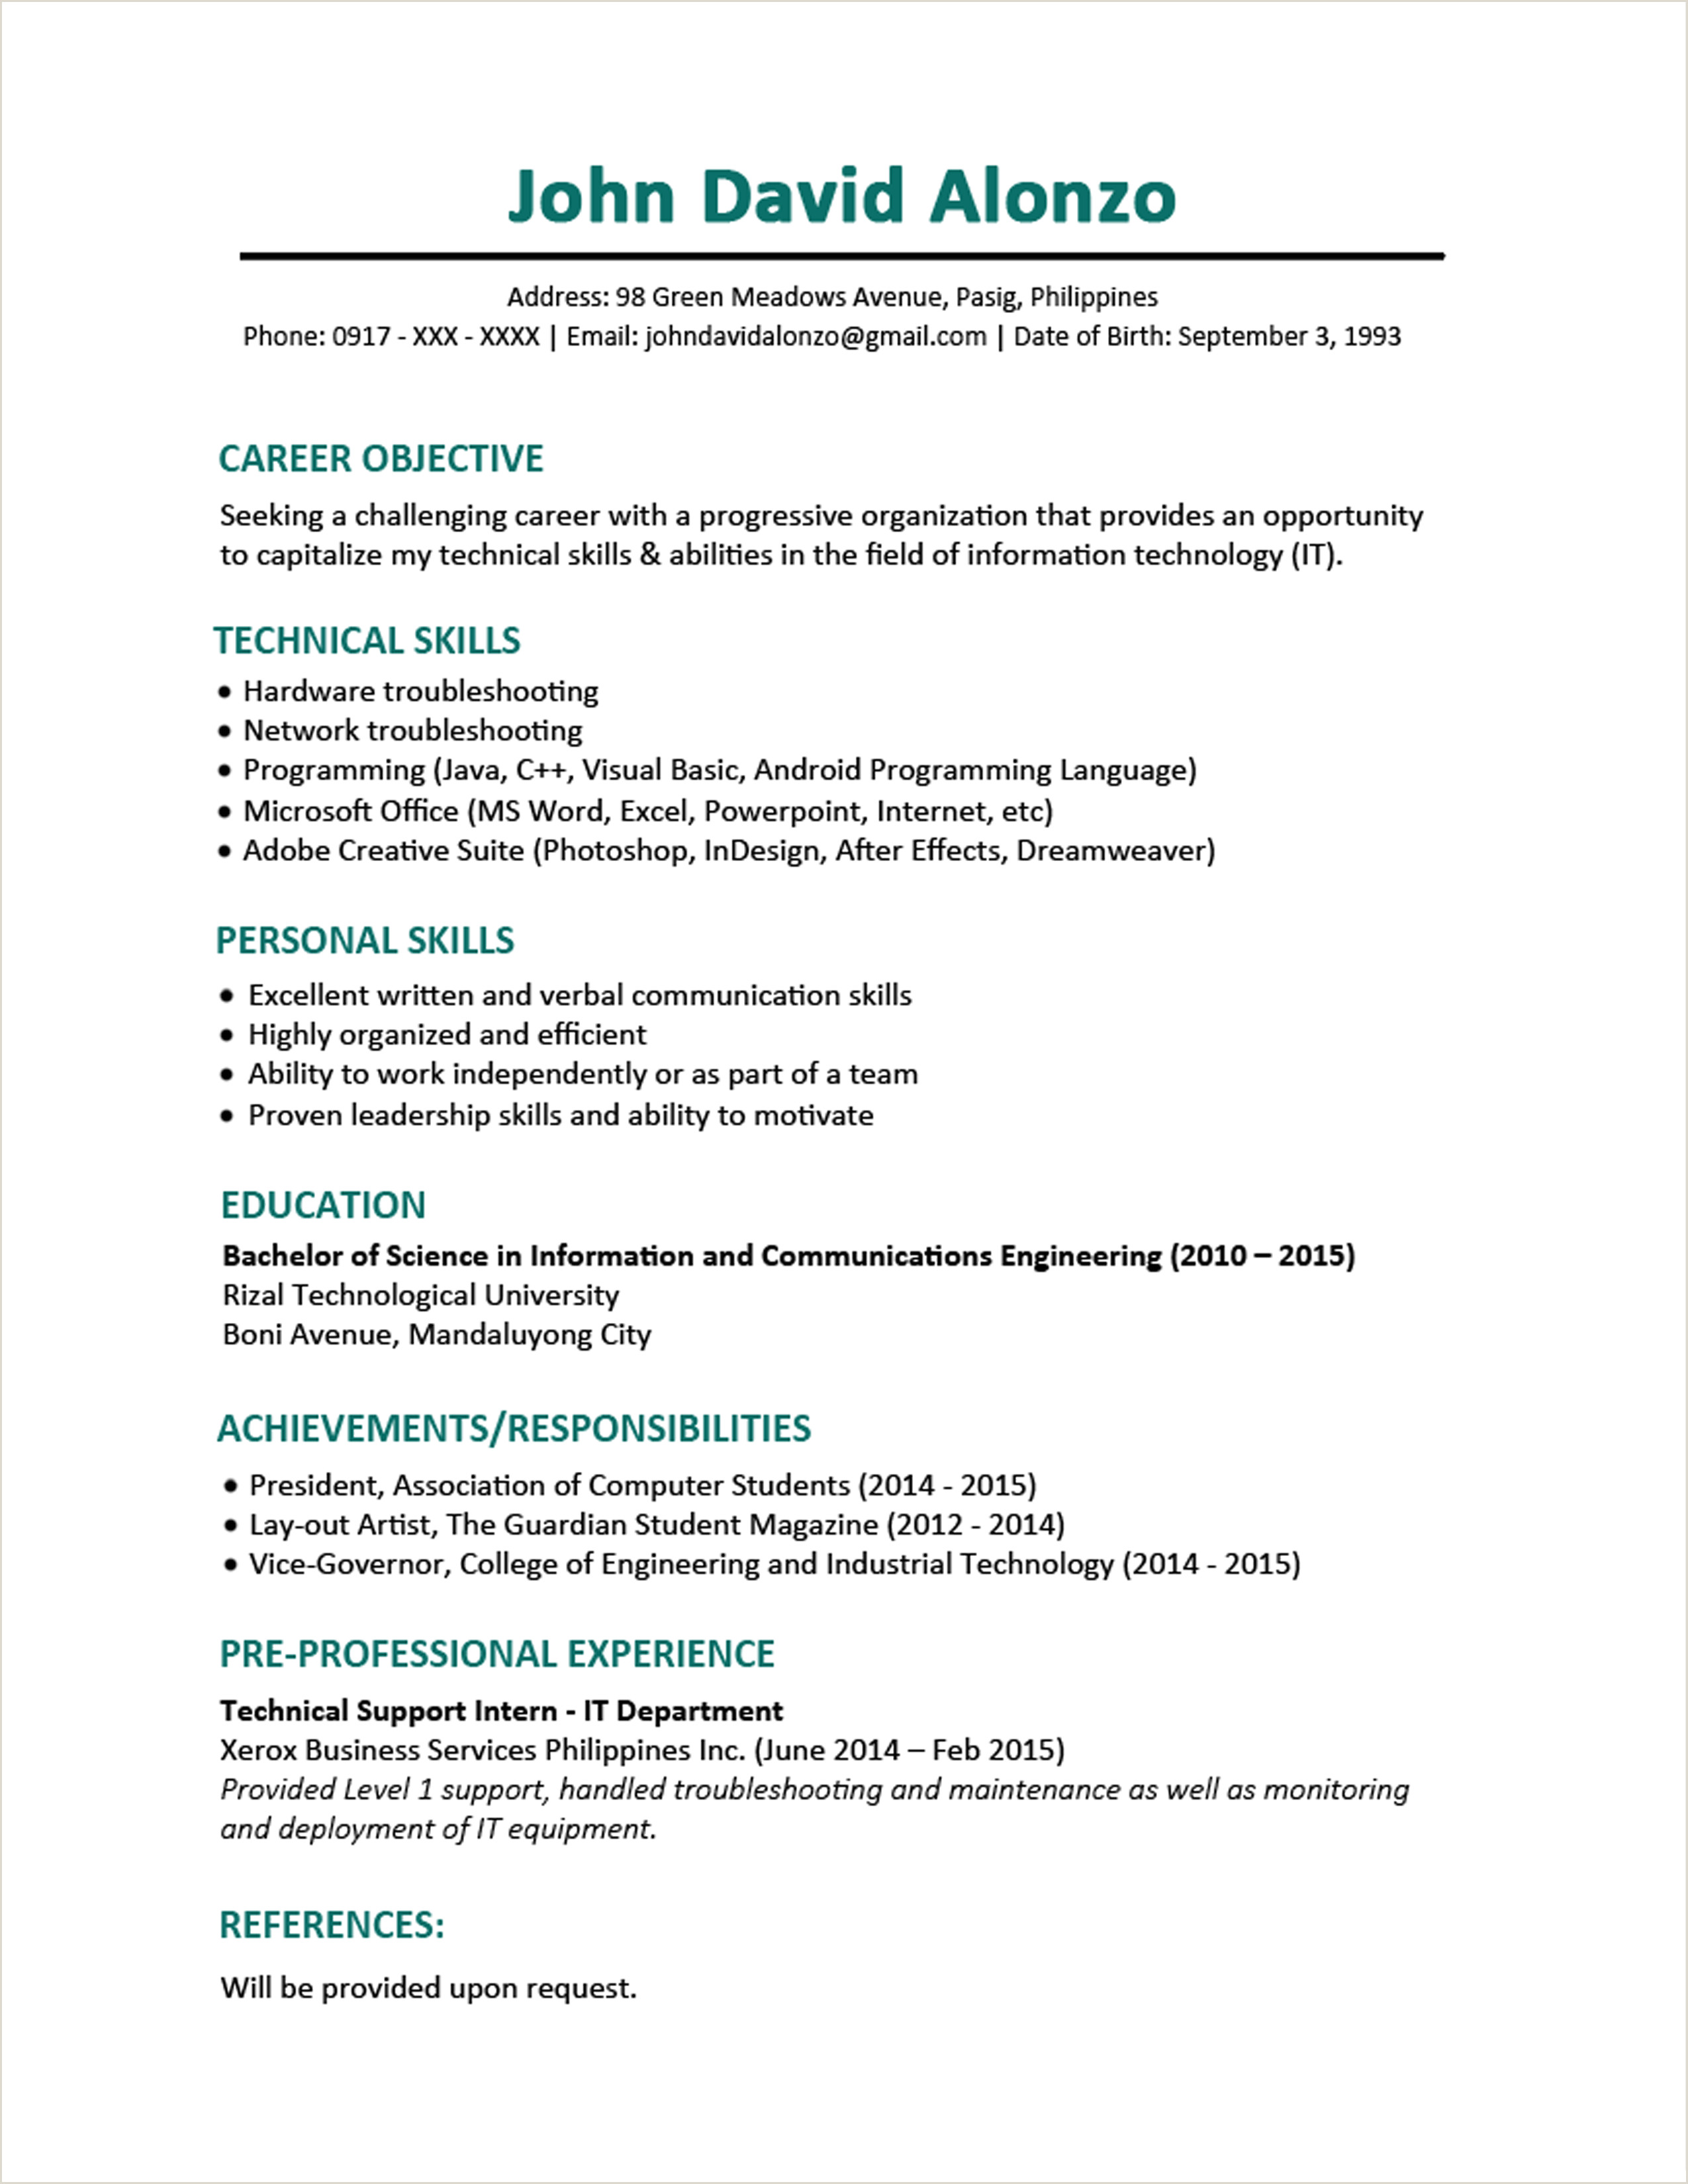 Resume format Download In Ms Word for Fresher Engineer 3 Page Resume format for Freshers Resume Templates